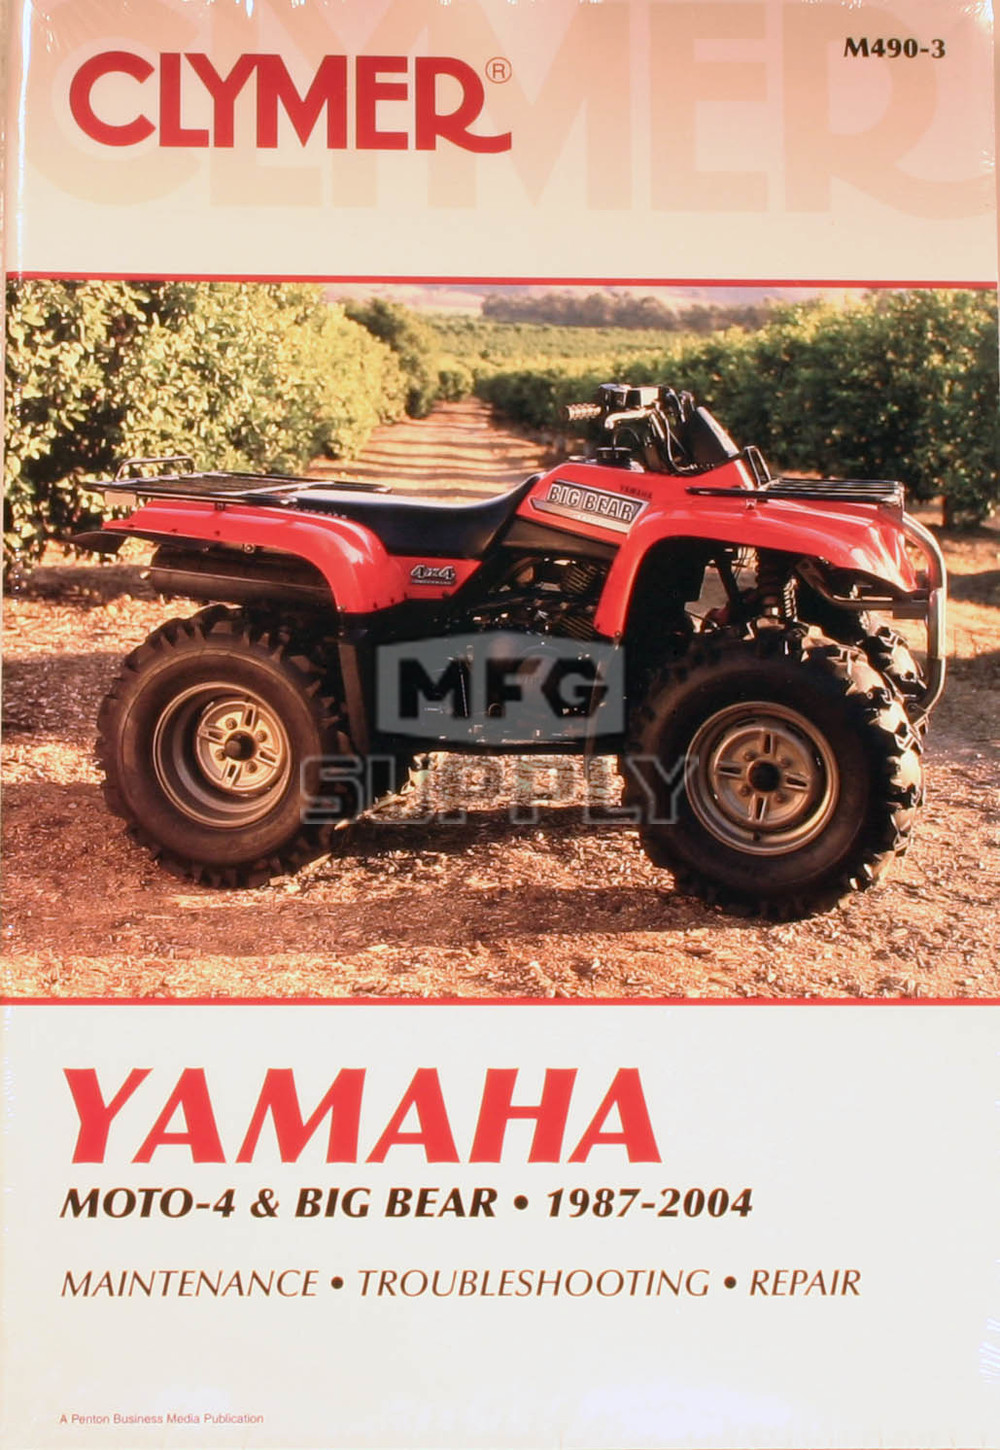 CM490 - 87-04 Yamaha Moto-4 & Big Bear Repair & Maintenance manual